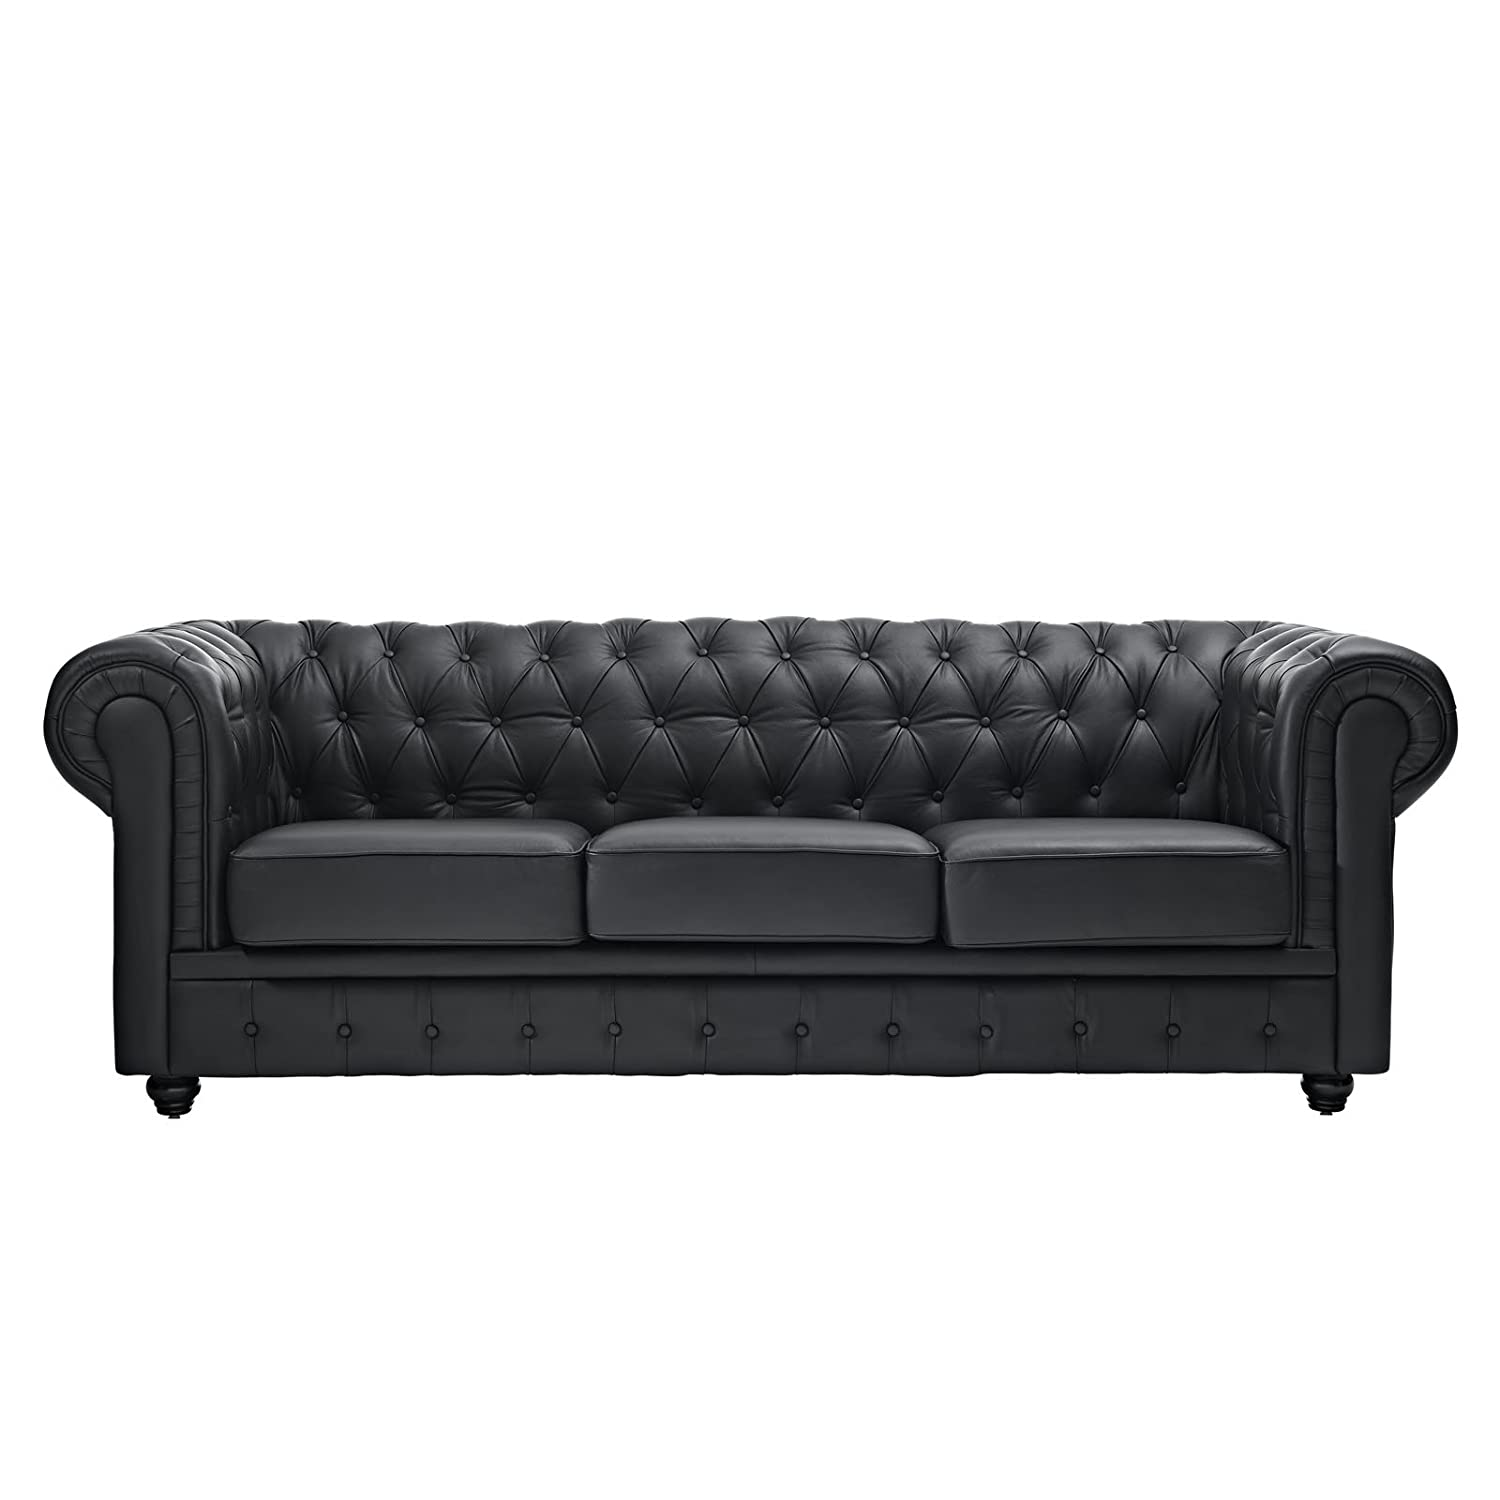 Amazon: Modway Chesterfield Sofa In Black Leather And Leather Match:  Kitchen & Dining